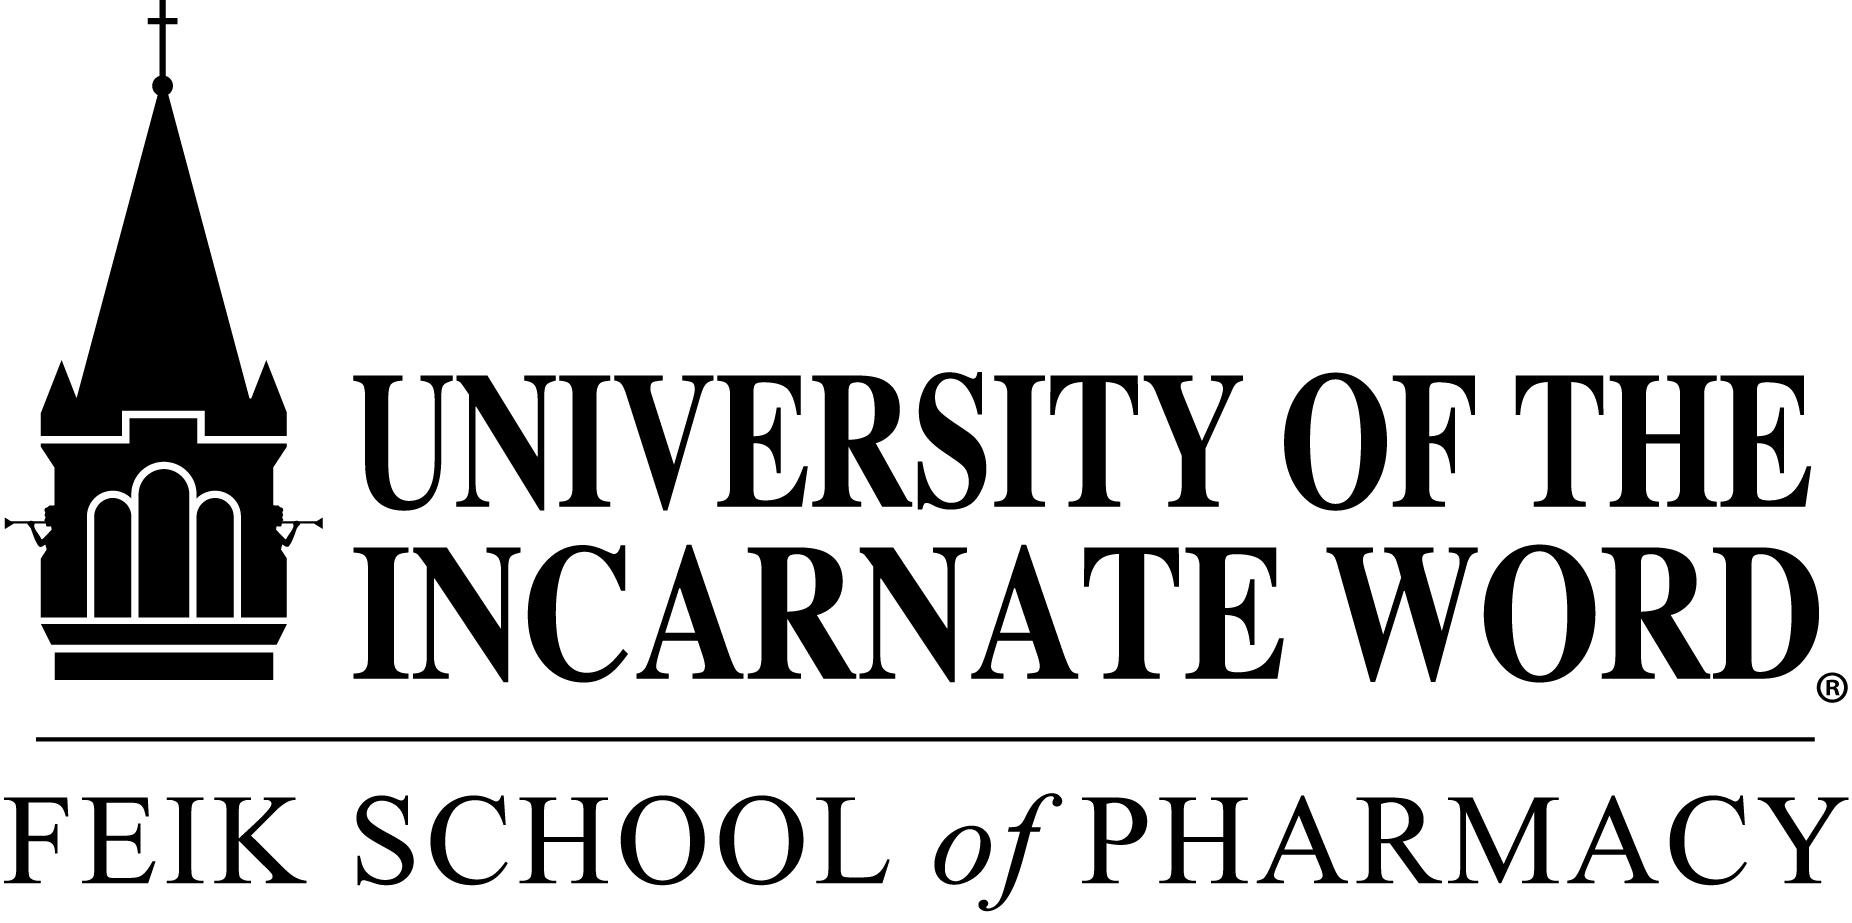 University of the Incarnate Word- Feik School of Pharmacy